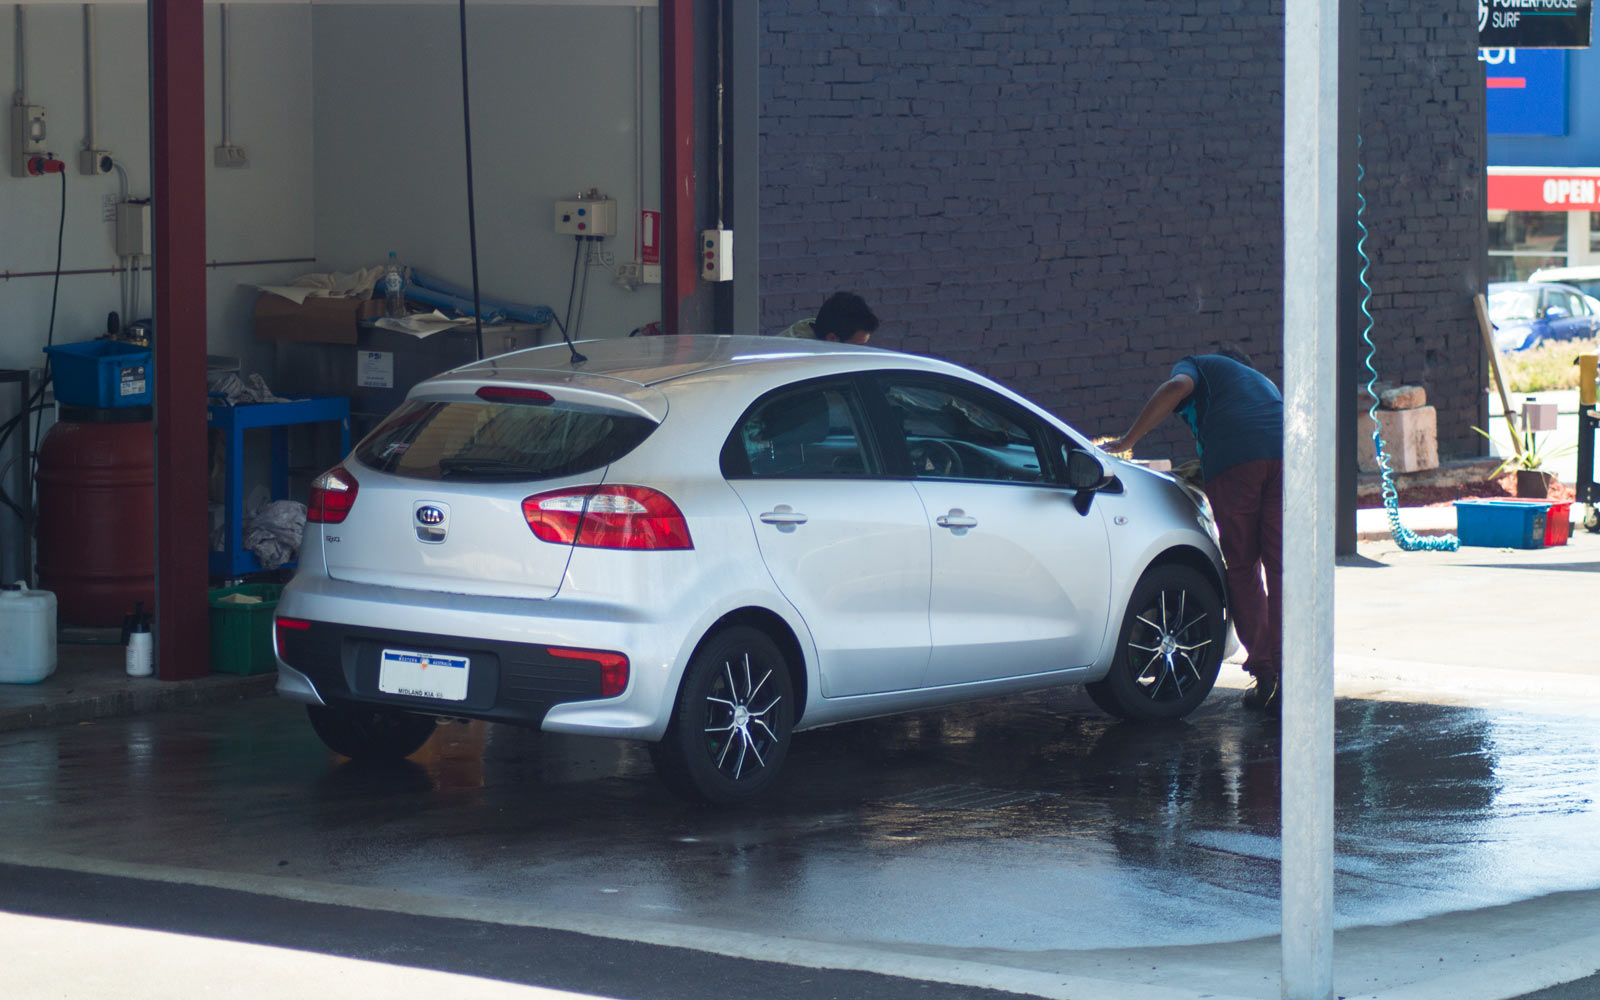 Impeccable Hand Car Wash & Detailing Palmyra